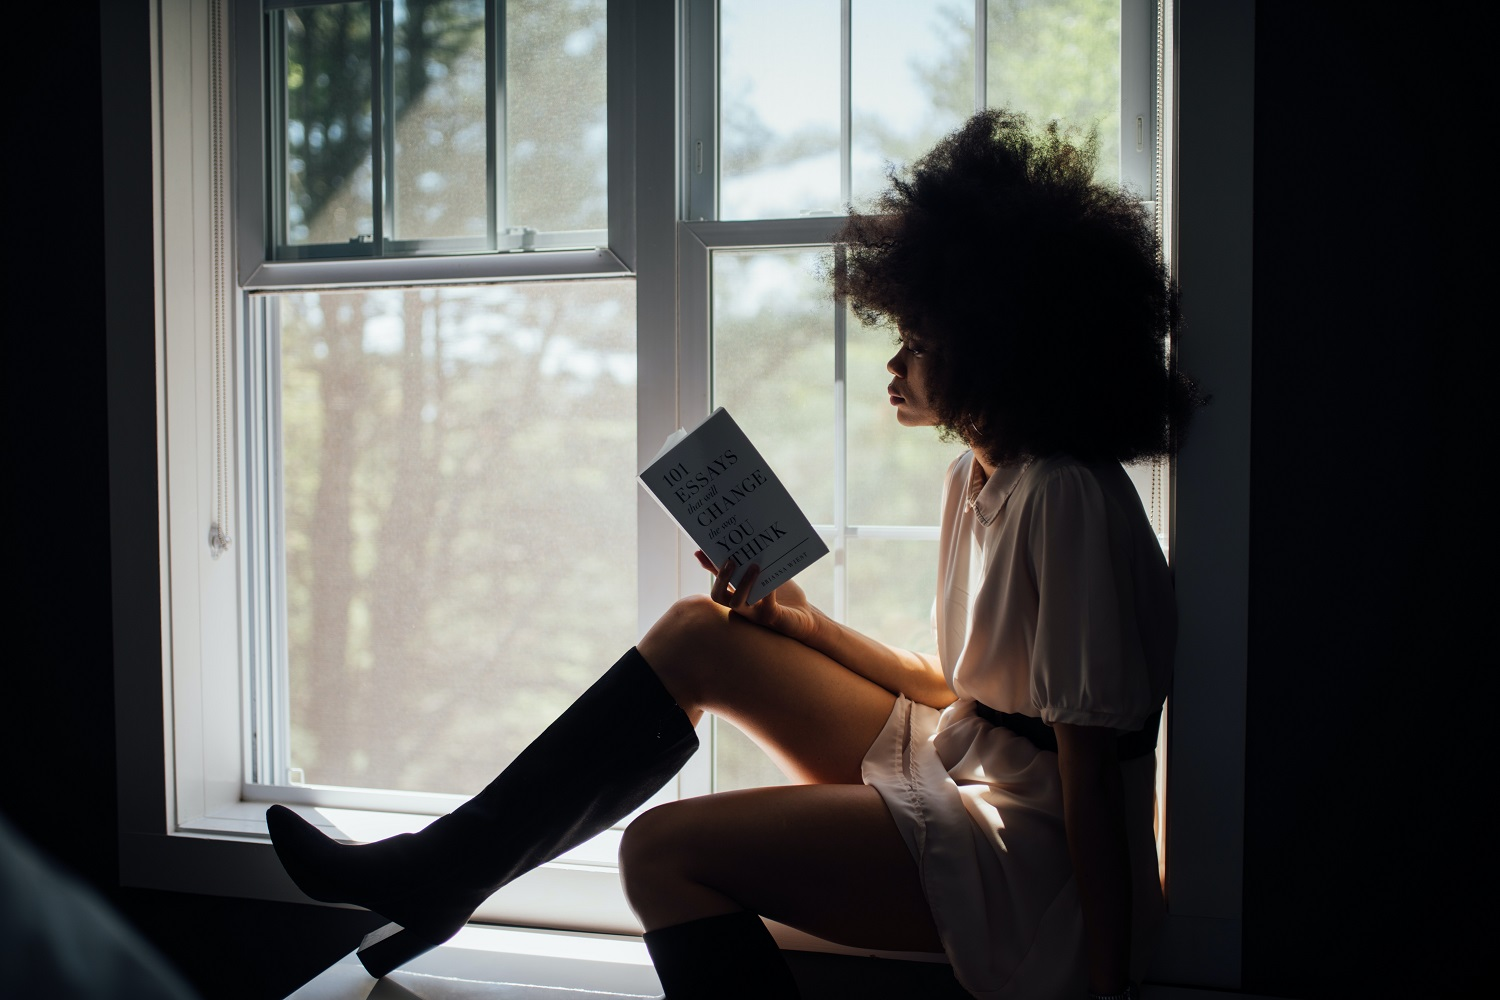 Porn Addiction Help in Washington – 7 Books To Assist With Your Addiction